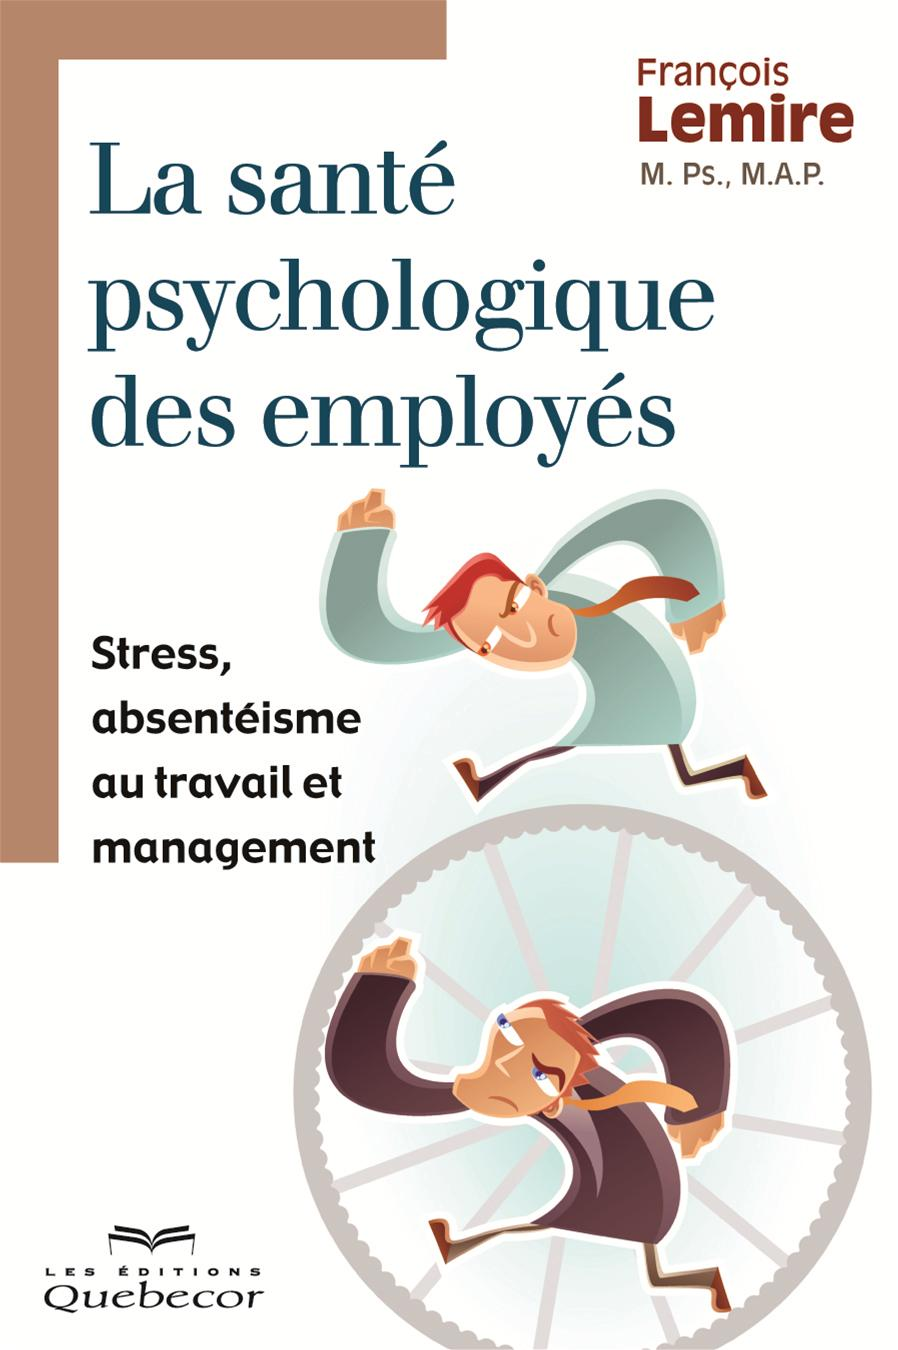 LA SANTE PSYCHOLOGIQUE DES EMPLOYES